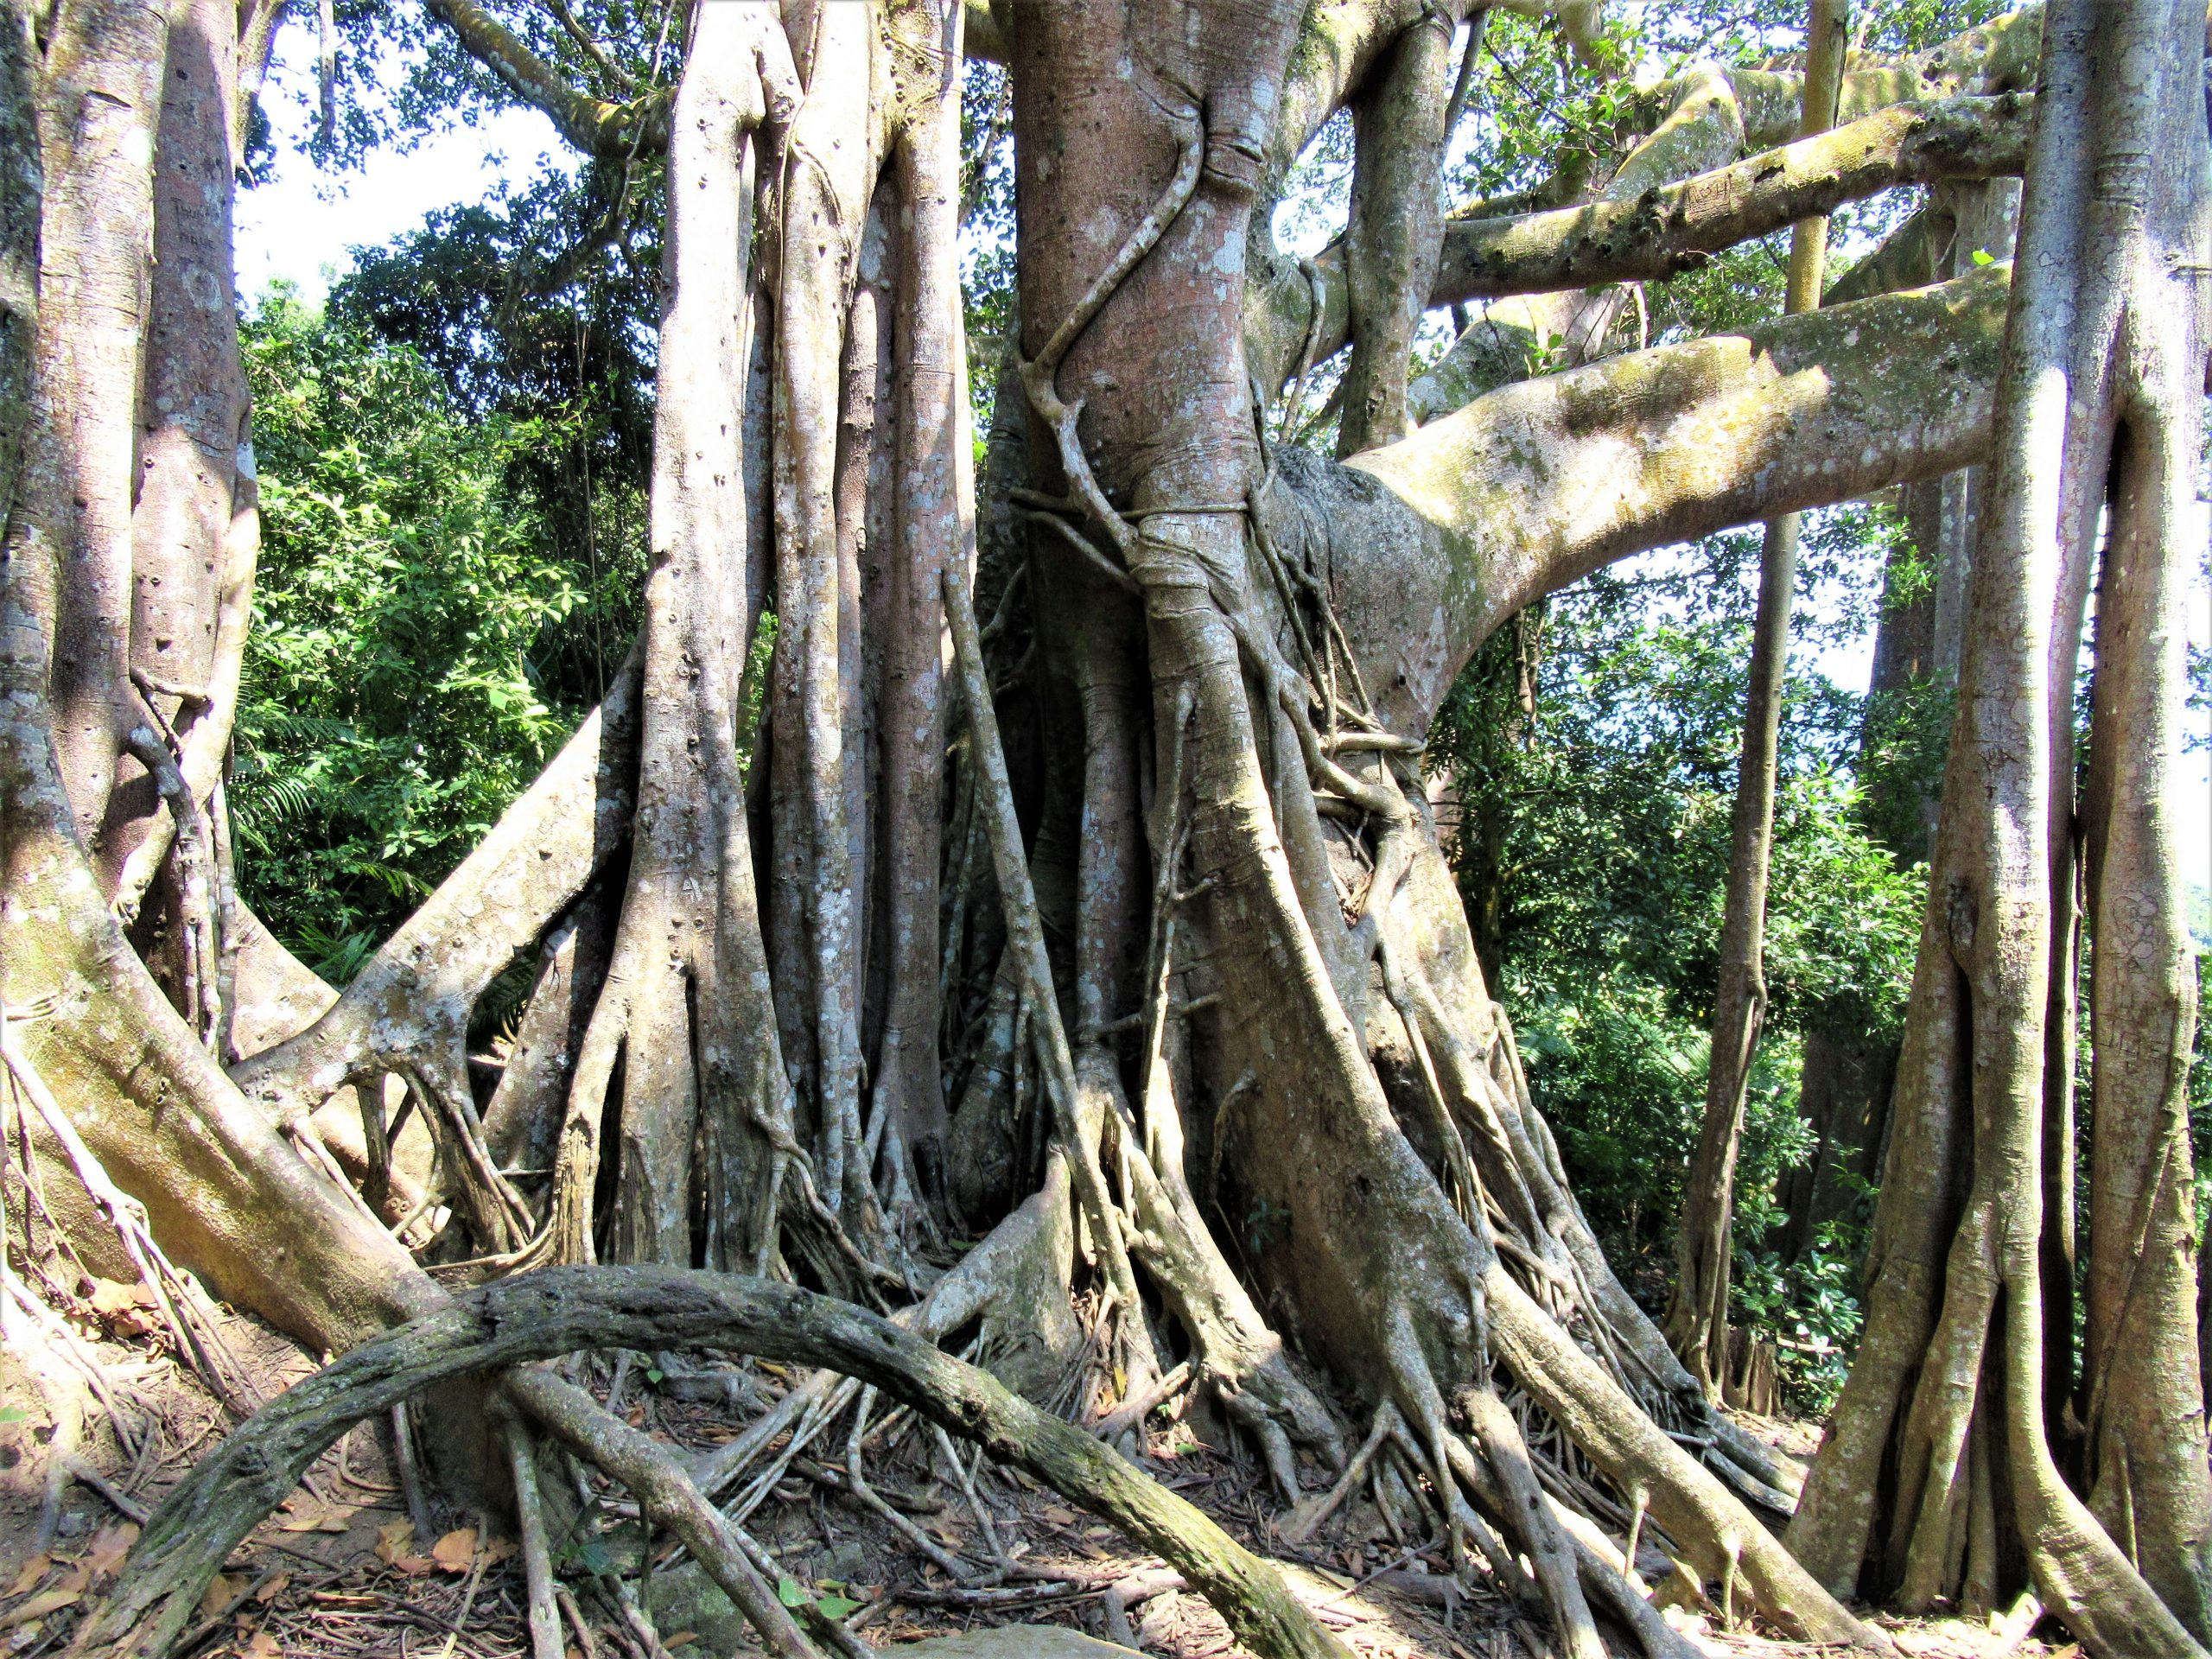 Roots, trunks & vines of a banyan tree, Vietnam